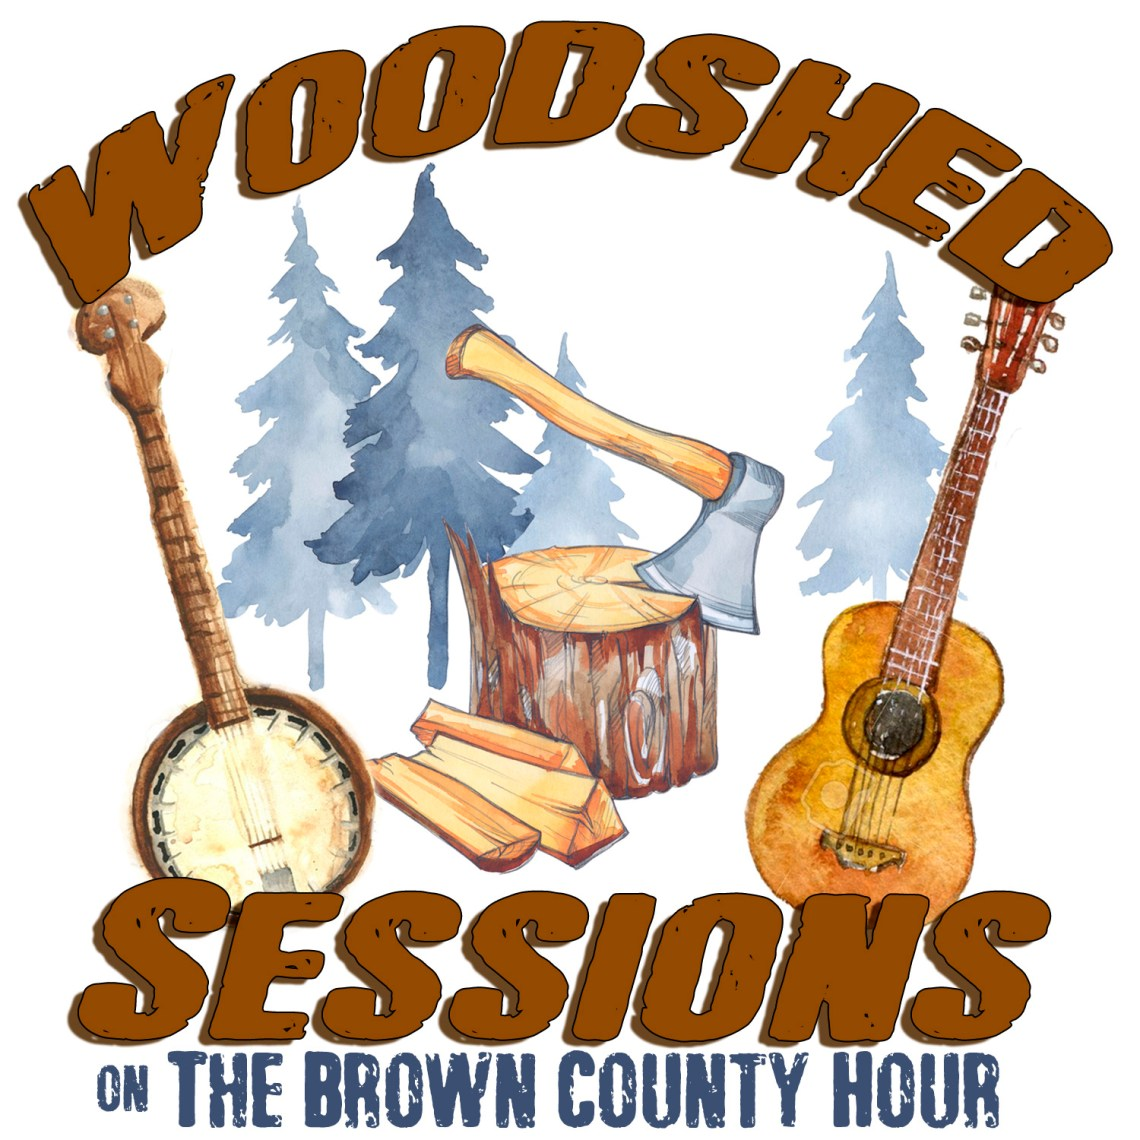 The Brown County Radio Hour on WFHB